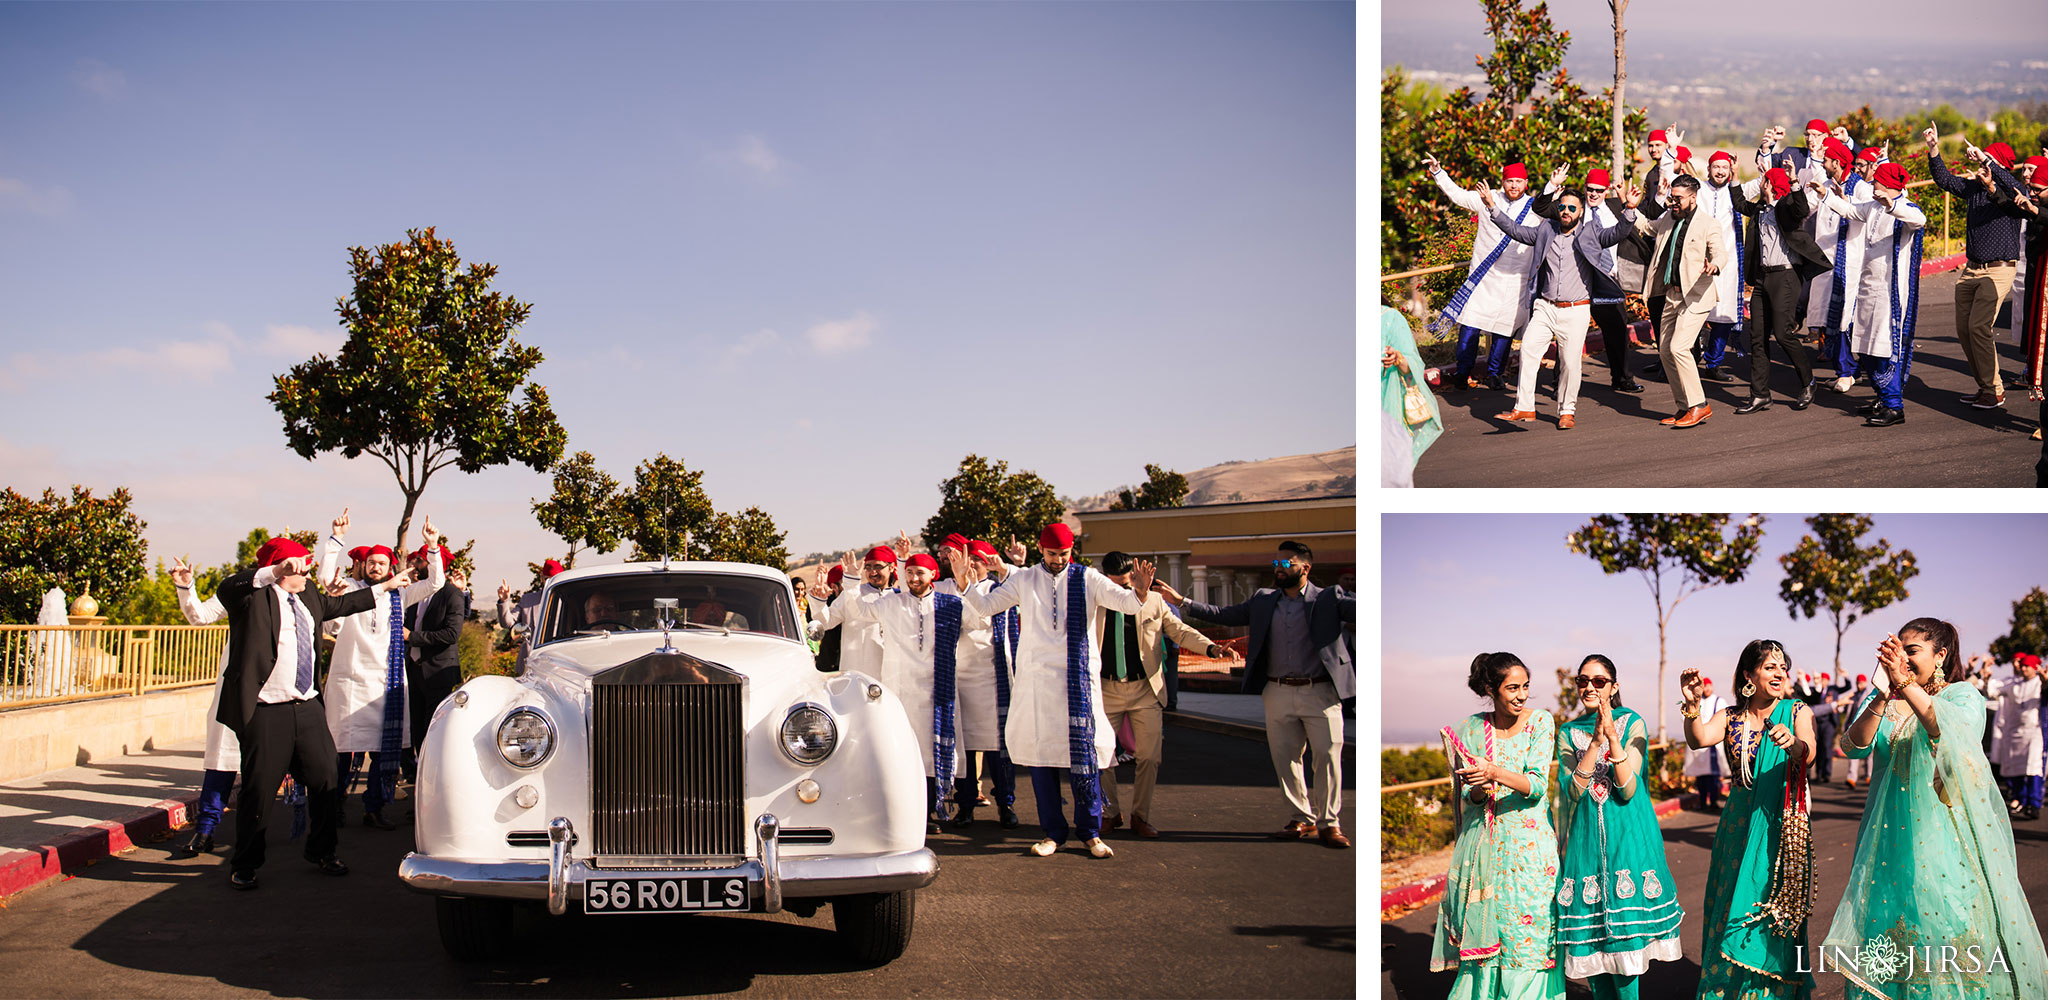 15 gurdwara sahib san jose punjabi sikh baraat wedding photography